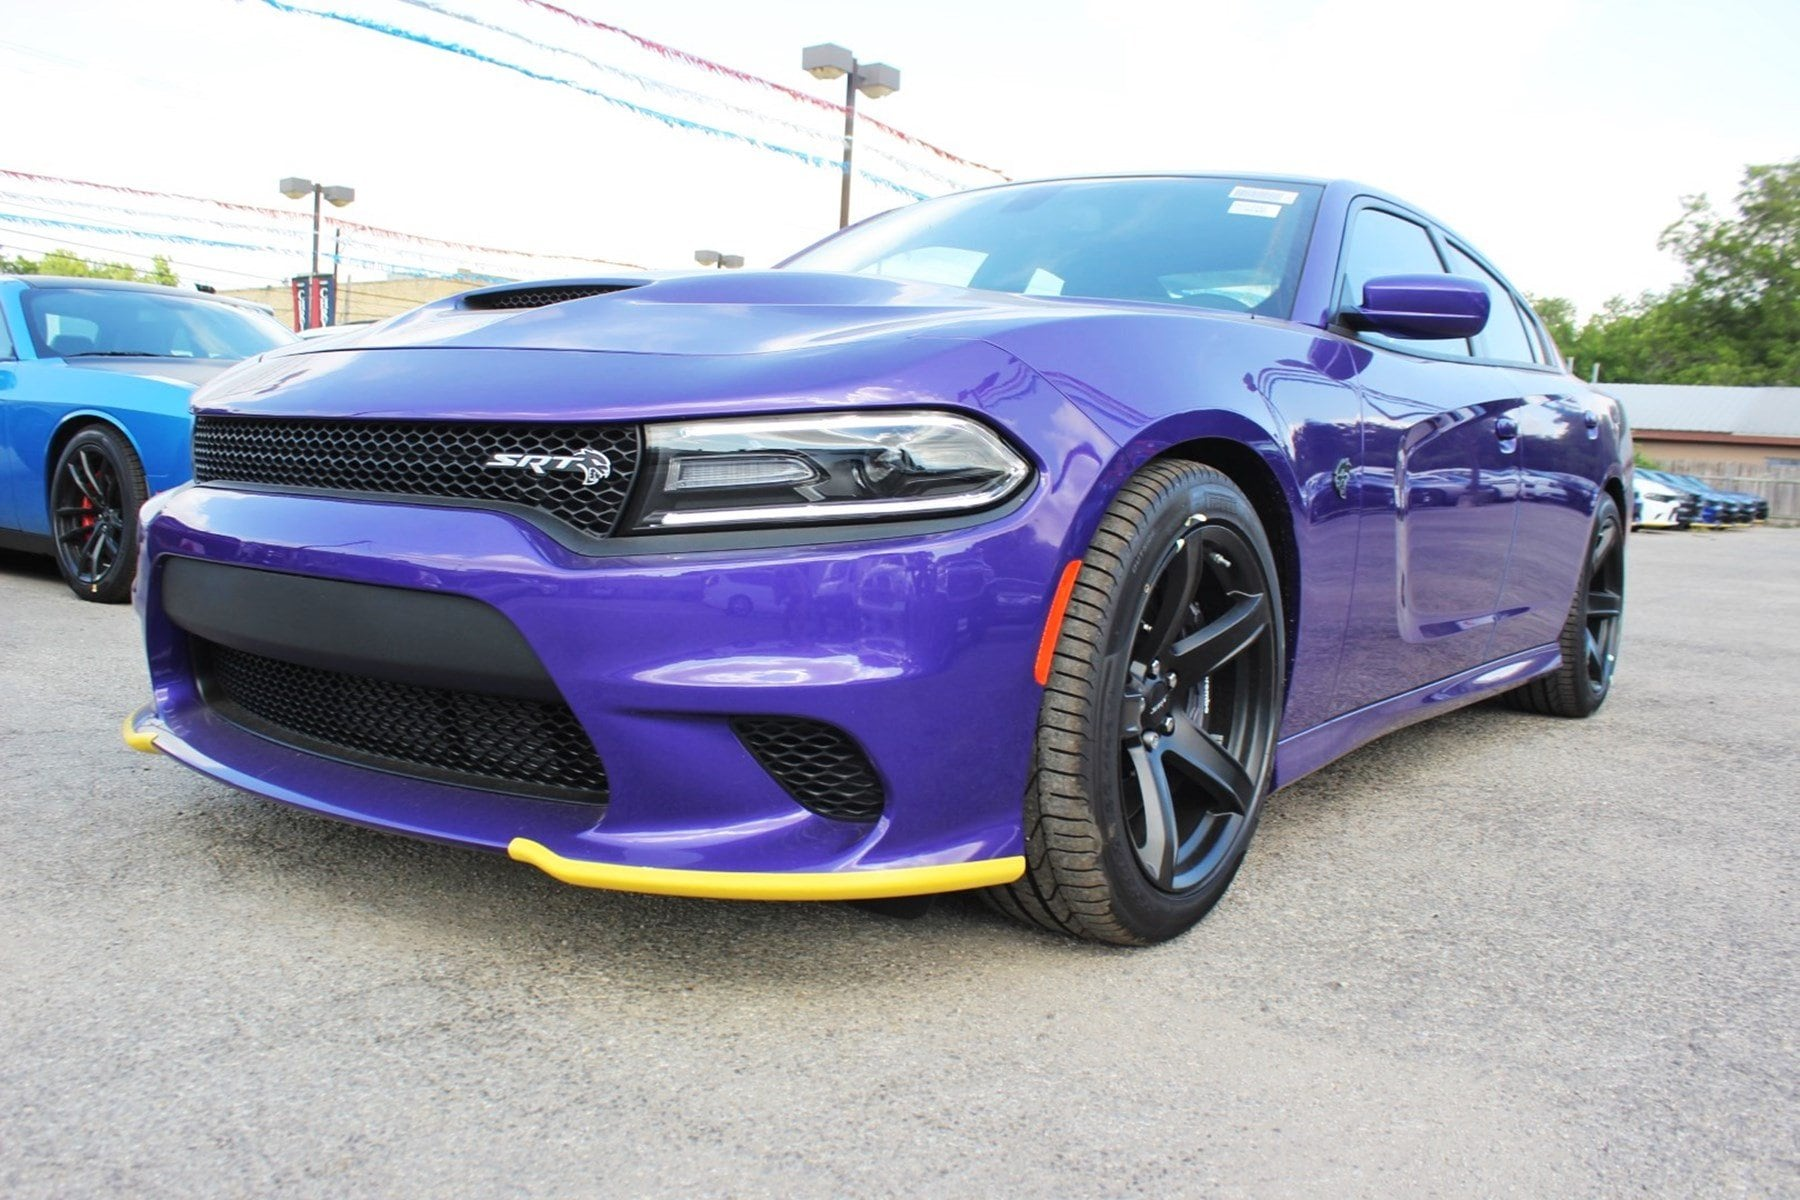 Dodge Charger Srt >> New 2018 Dodge Charger Srt Hellcat For Sale In The San Antonio And New Braunfels Tx Area 2c3cdxl9xjh312042